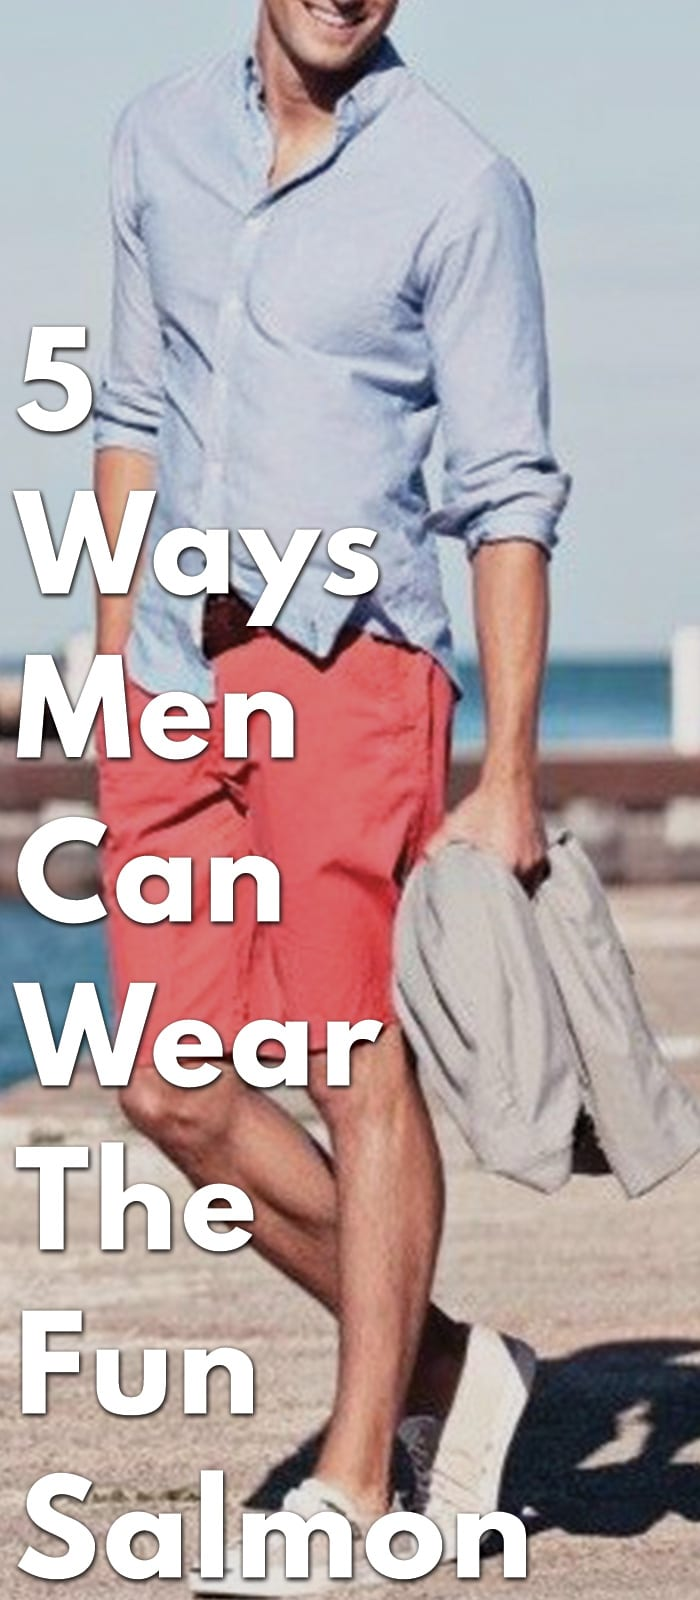 5-Ways-Men-Can-Wear-The-Fun-Salmon